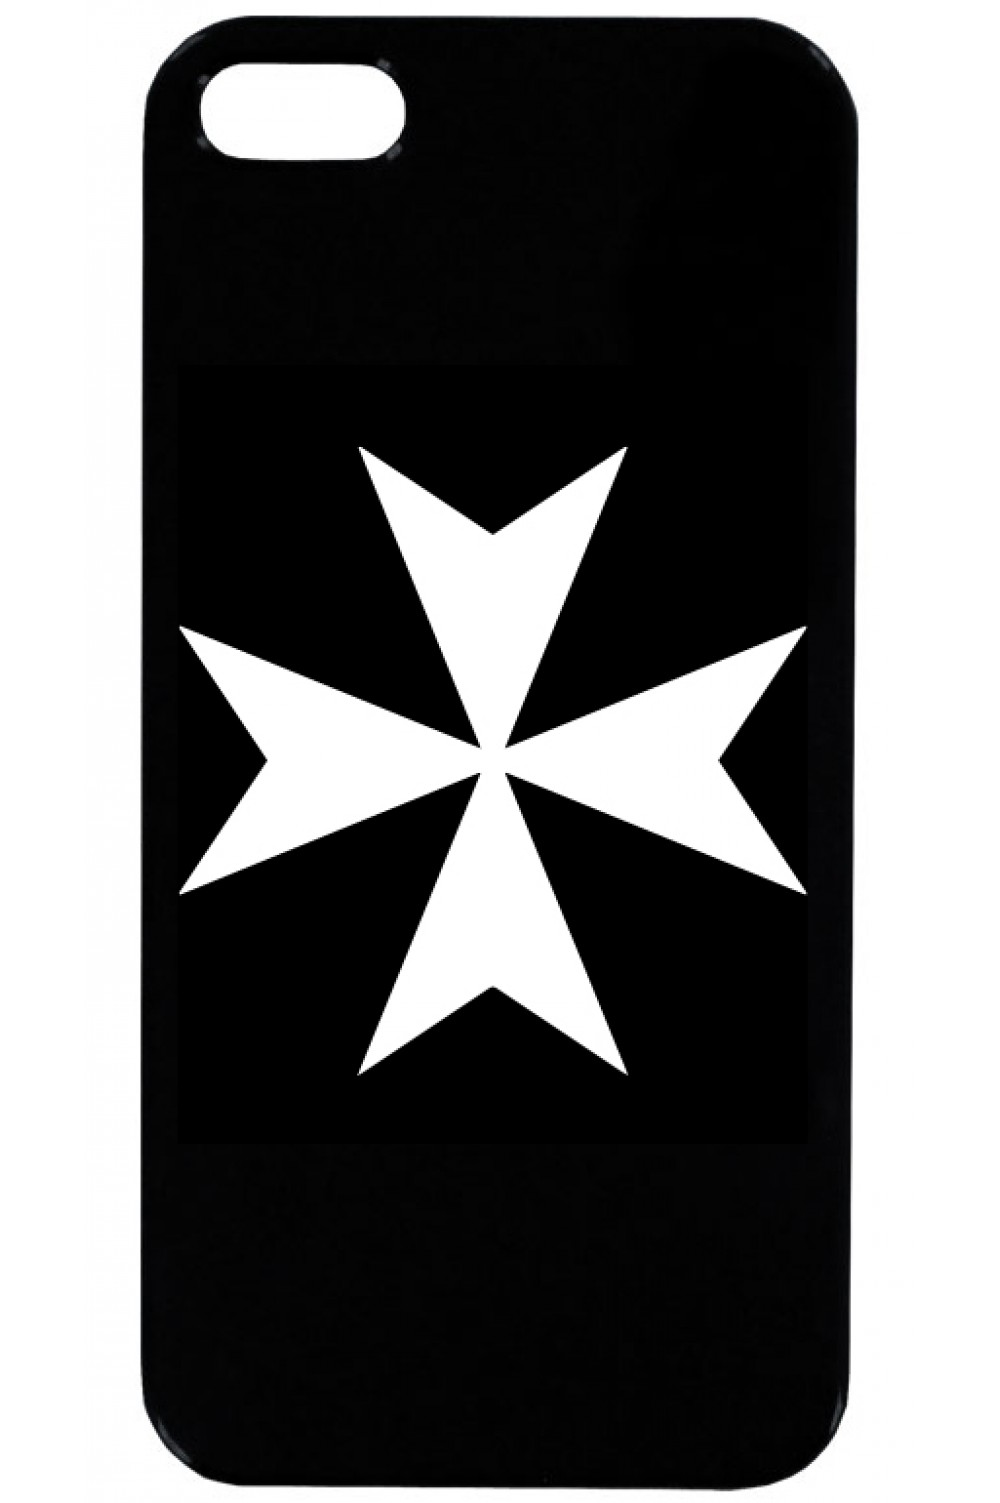 Phone Case - Sovereign Order of Malta 1